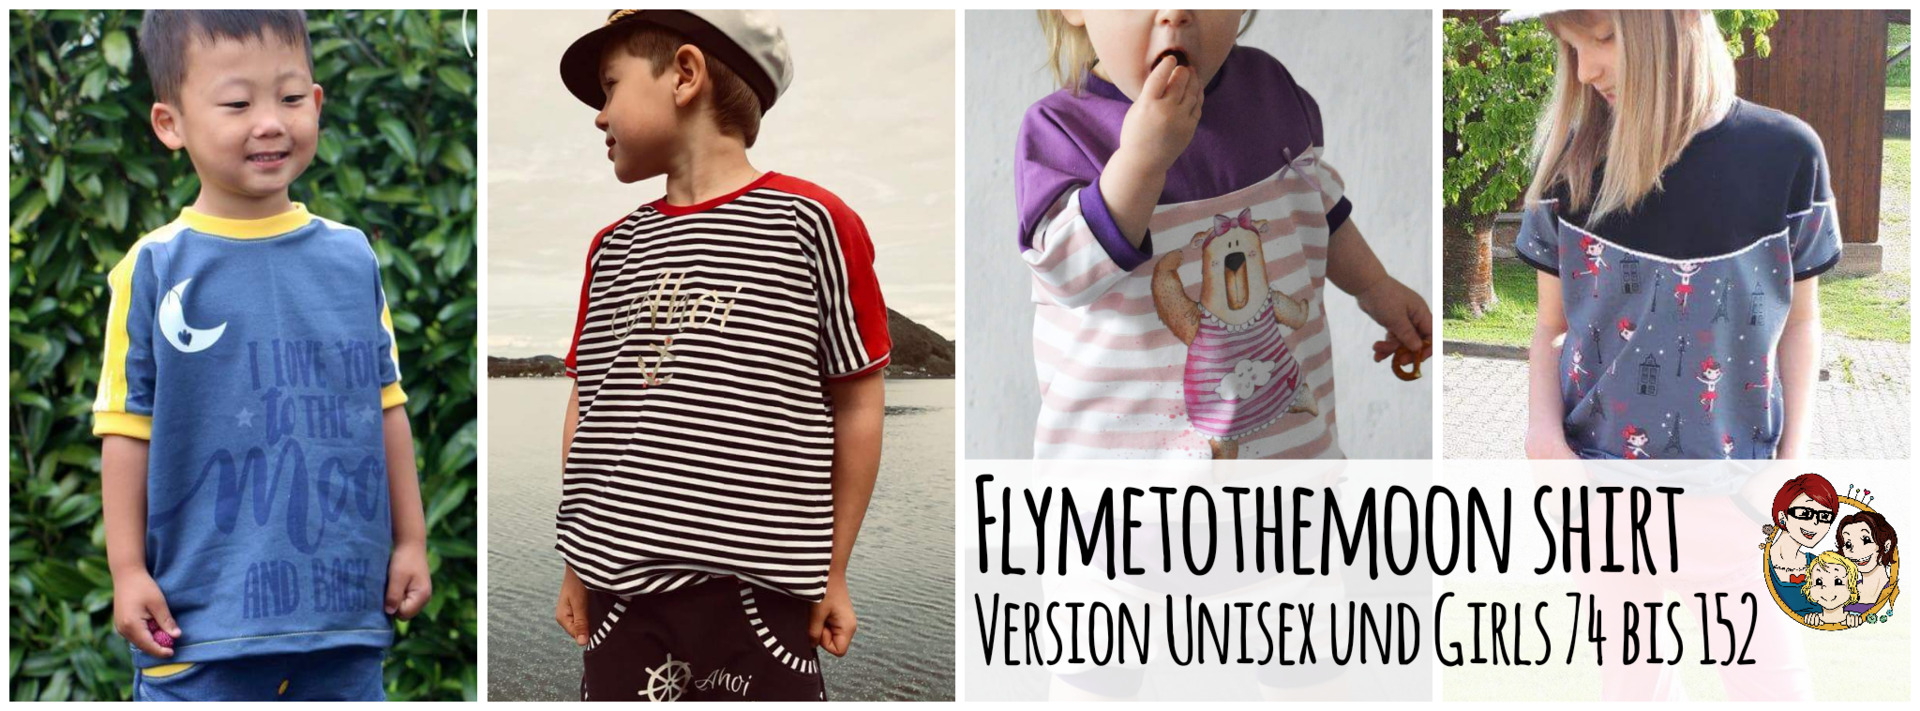 #flymetothemoon Shirt Unisex & Girls